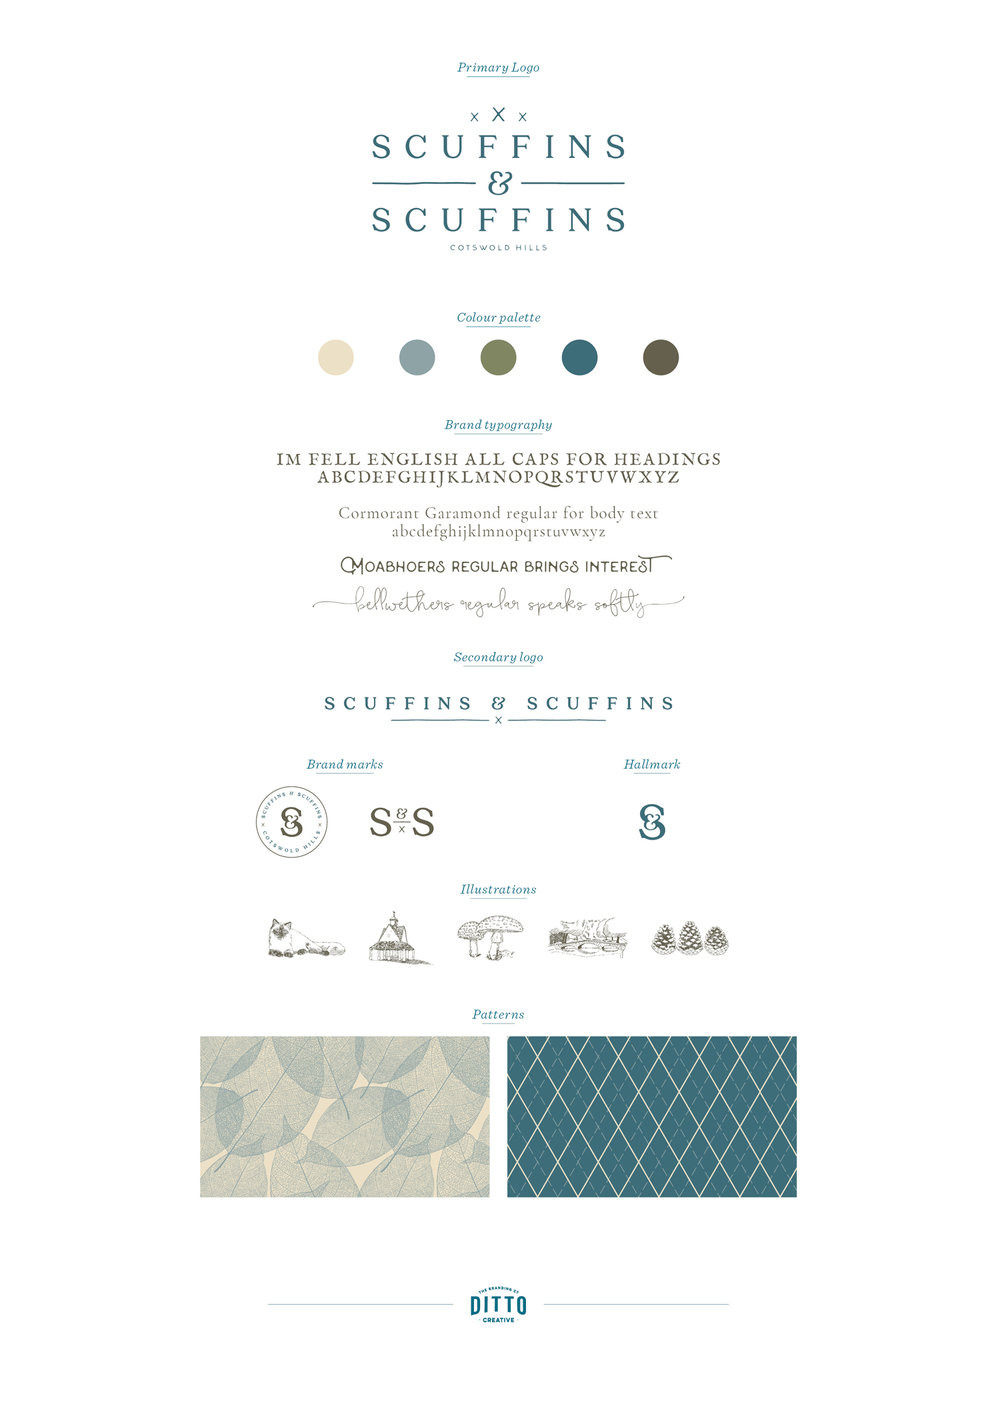 Scuffins and Scuffins logo design and brand identity by Ditto Creative, branding agency Kent